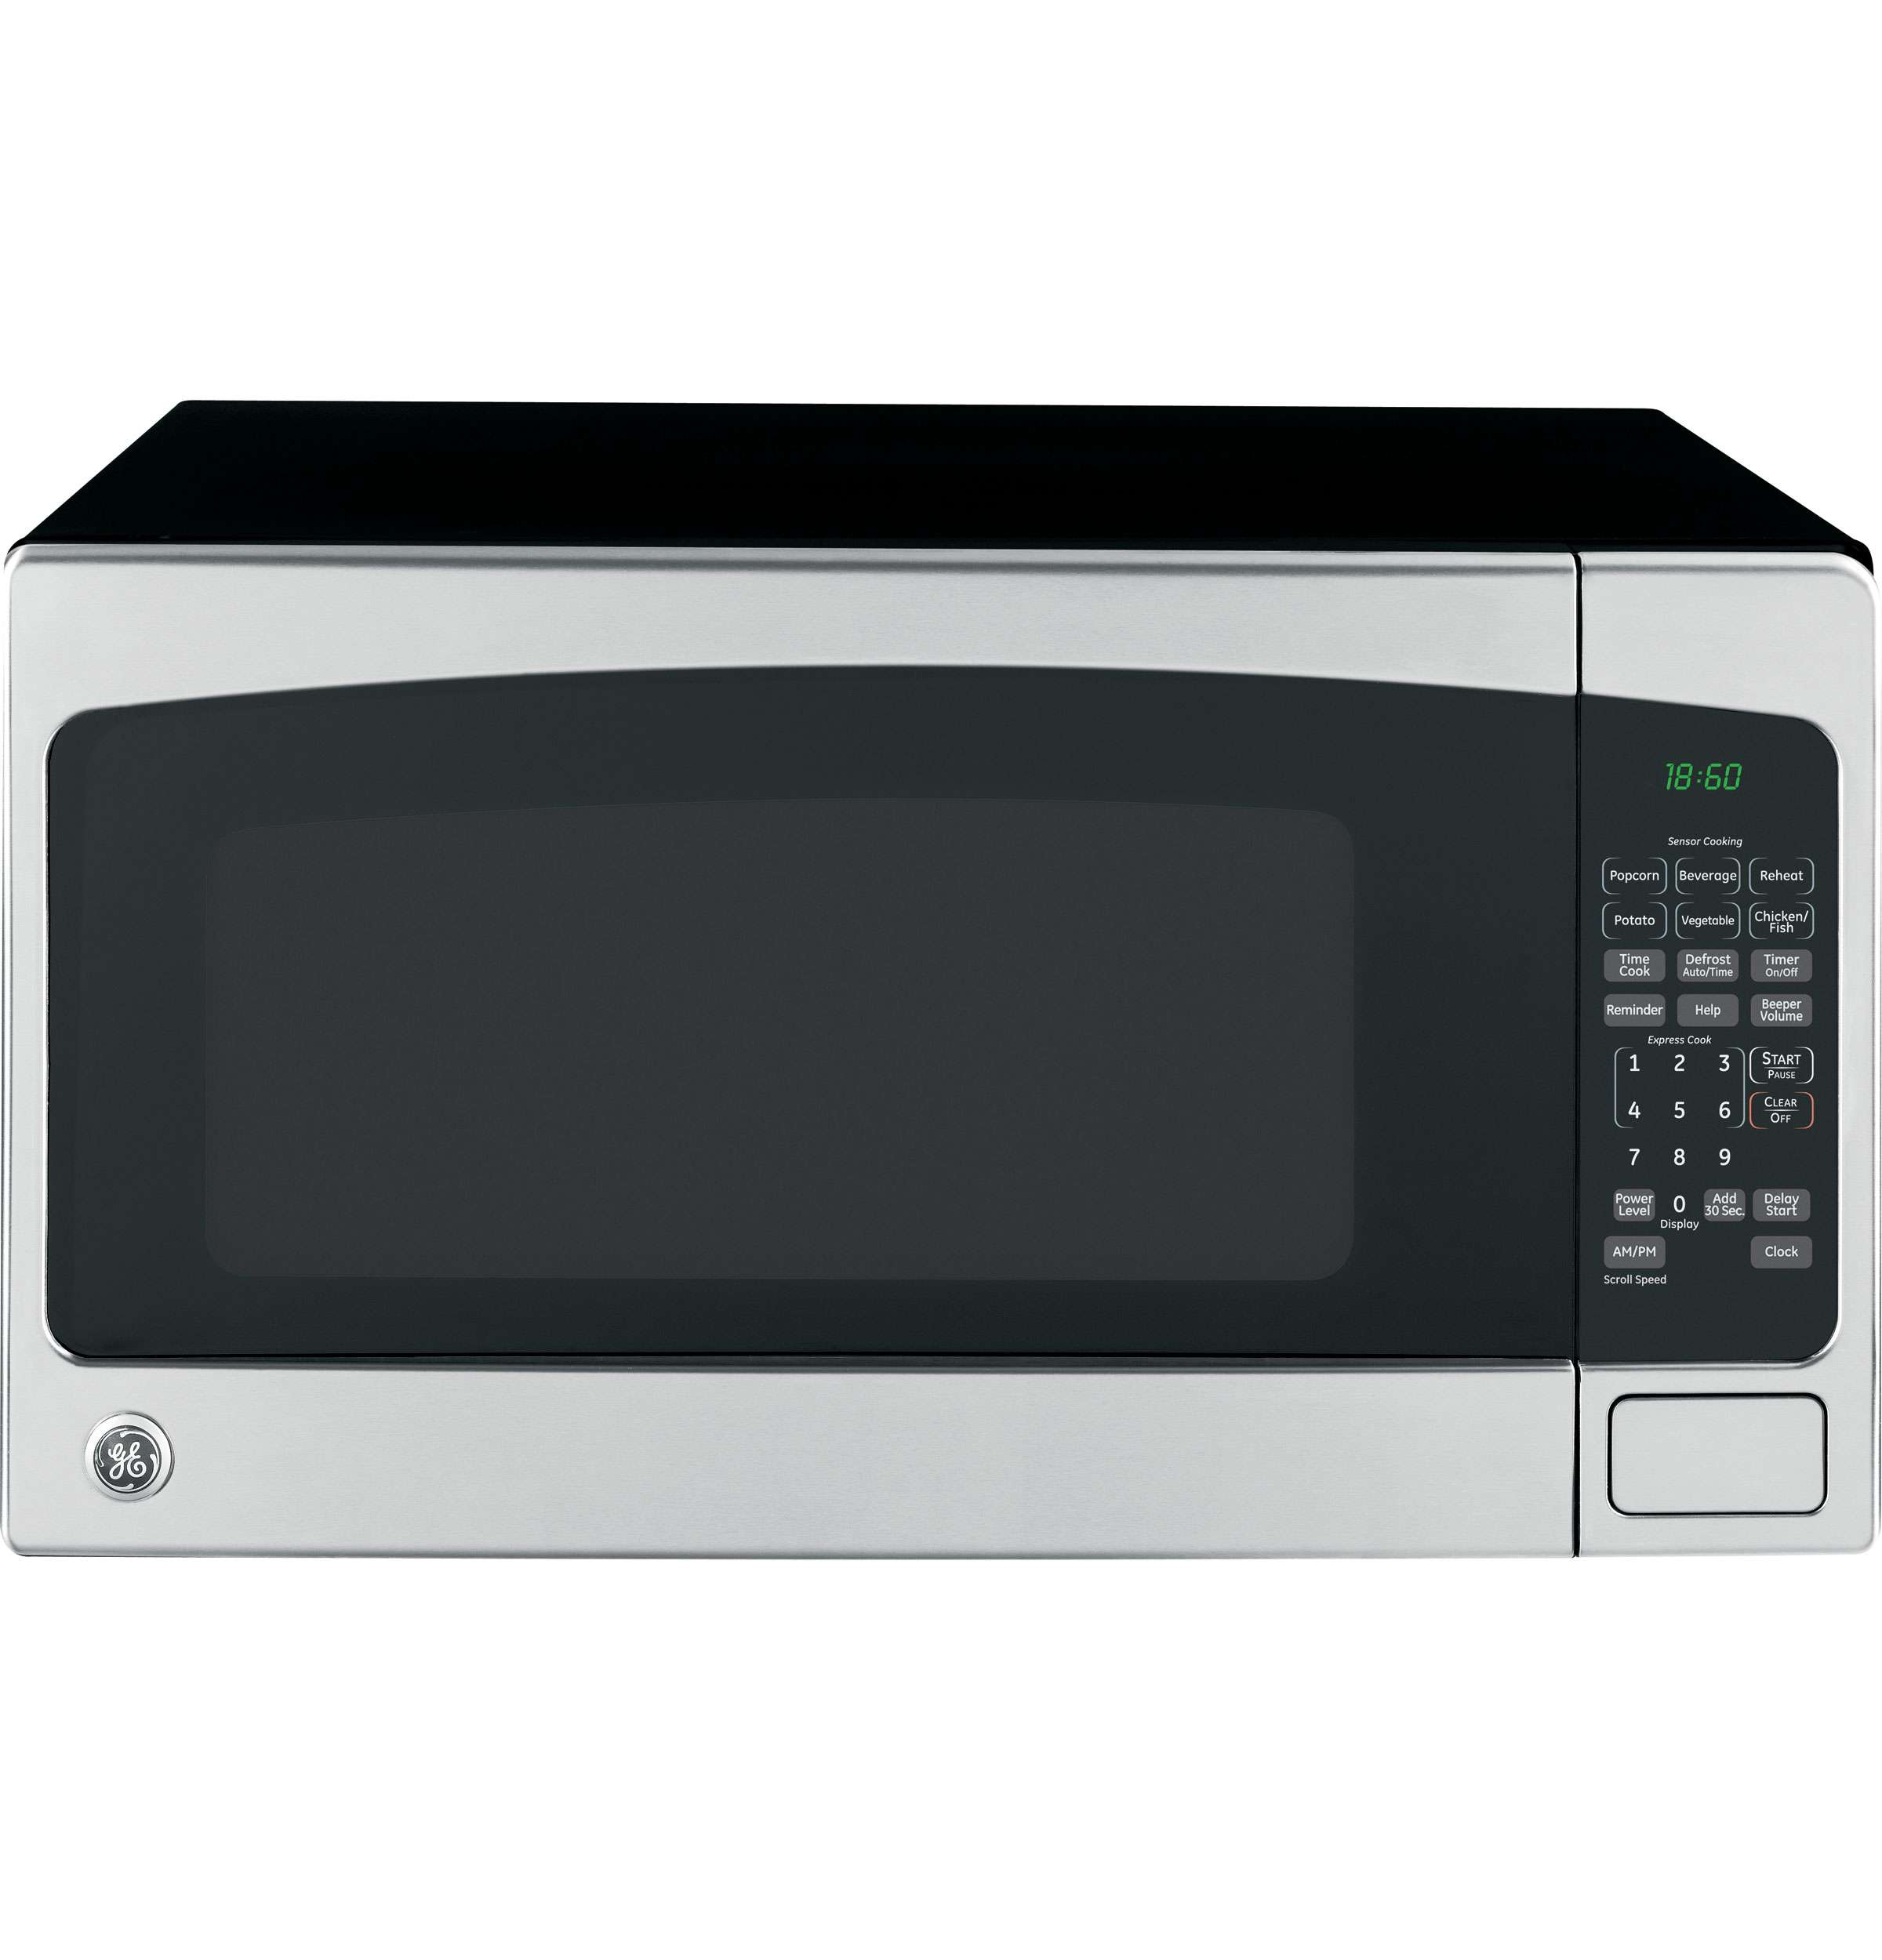 GE 2.0 Cu. Ft. Stainless Steel Countertop Microwave - JES2051SNSS Image 2